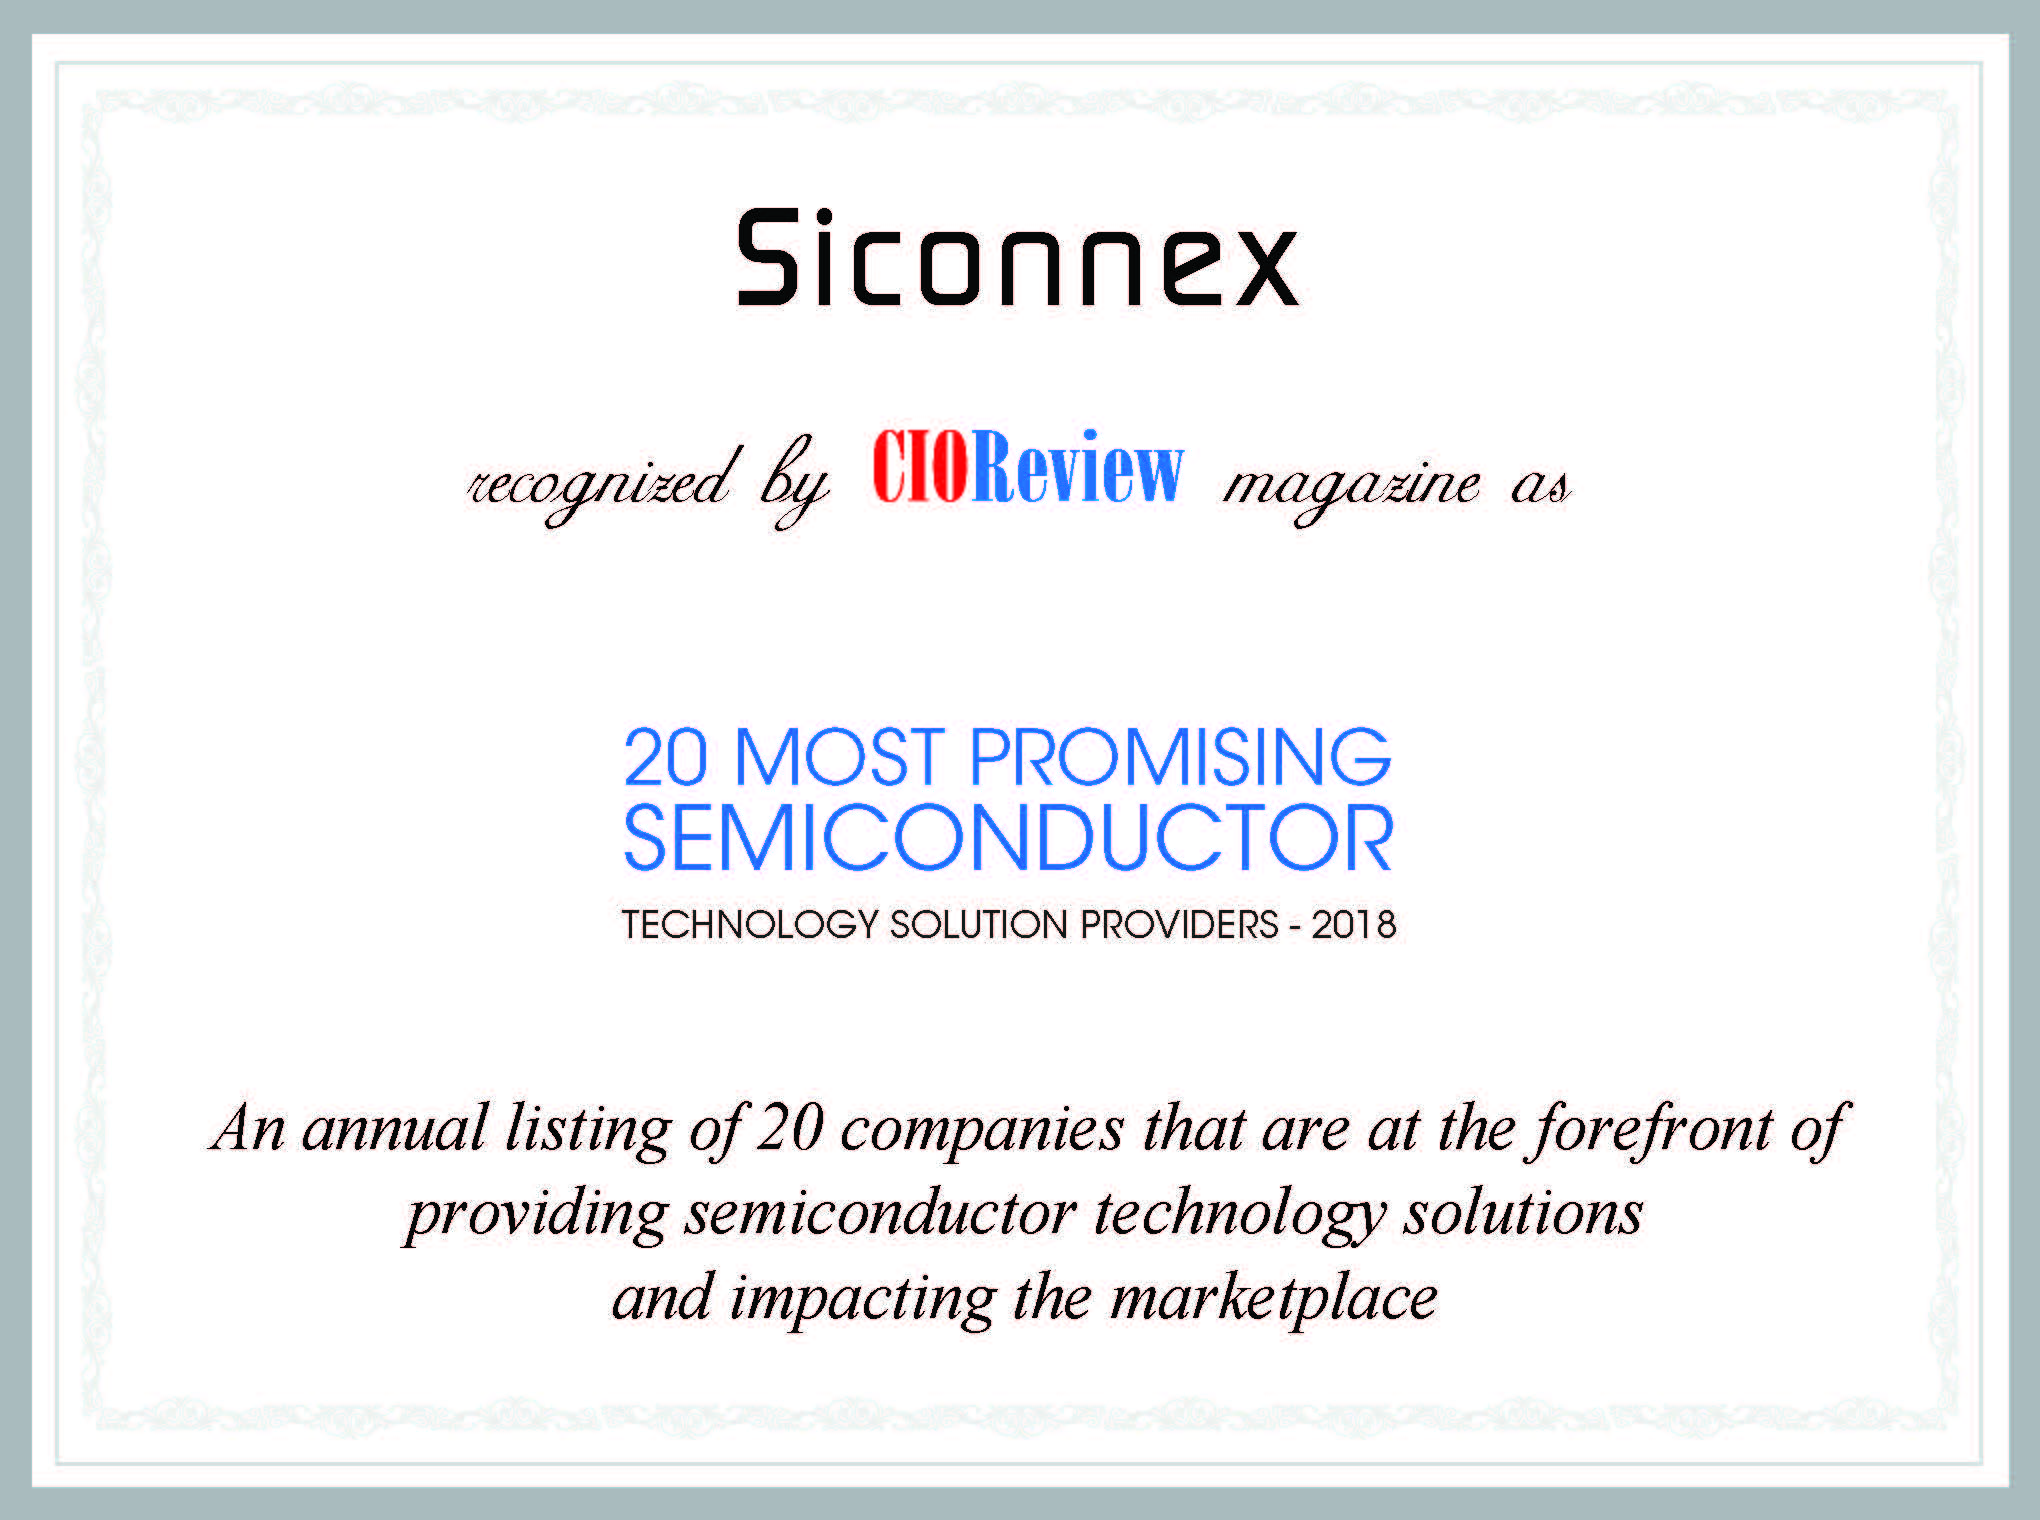 Award for Siconnex